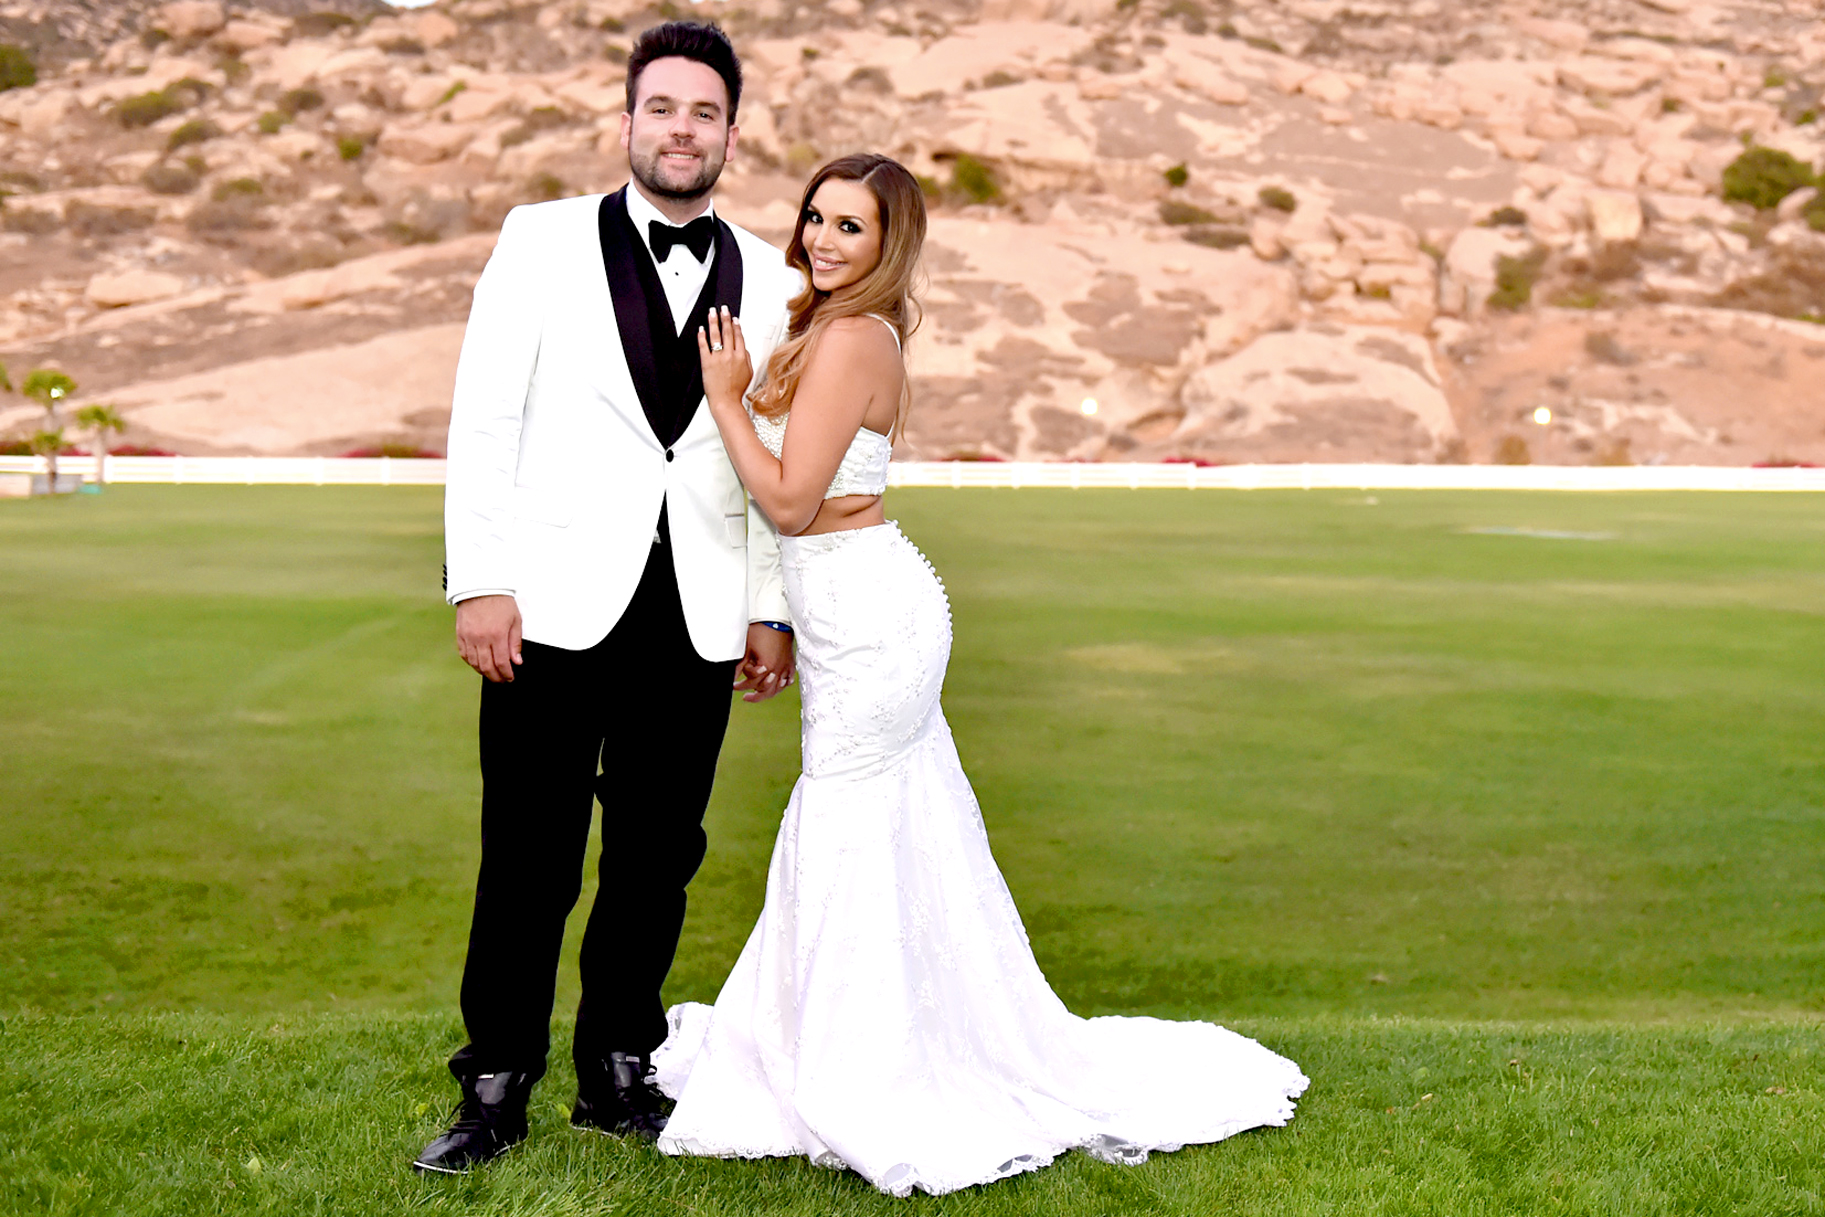 Scheana Looks Back At Her Wedding Quot Everything Was Perfect Until The Day Of Quot The Daily Dish